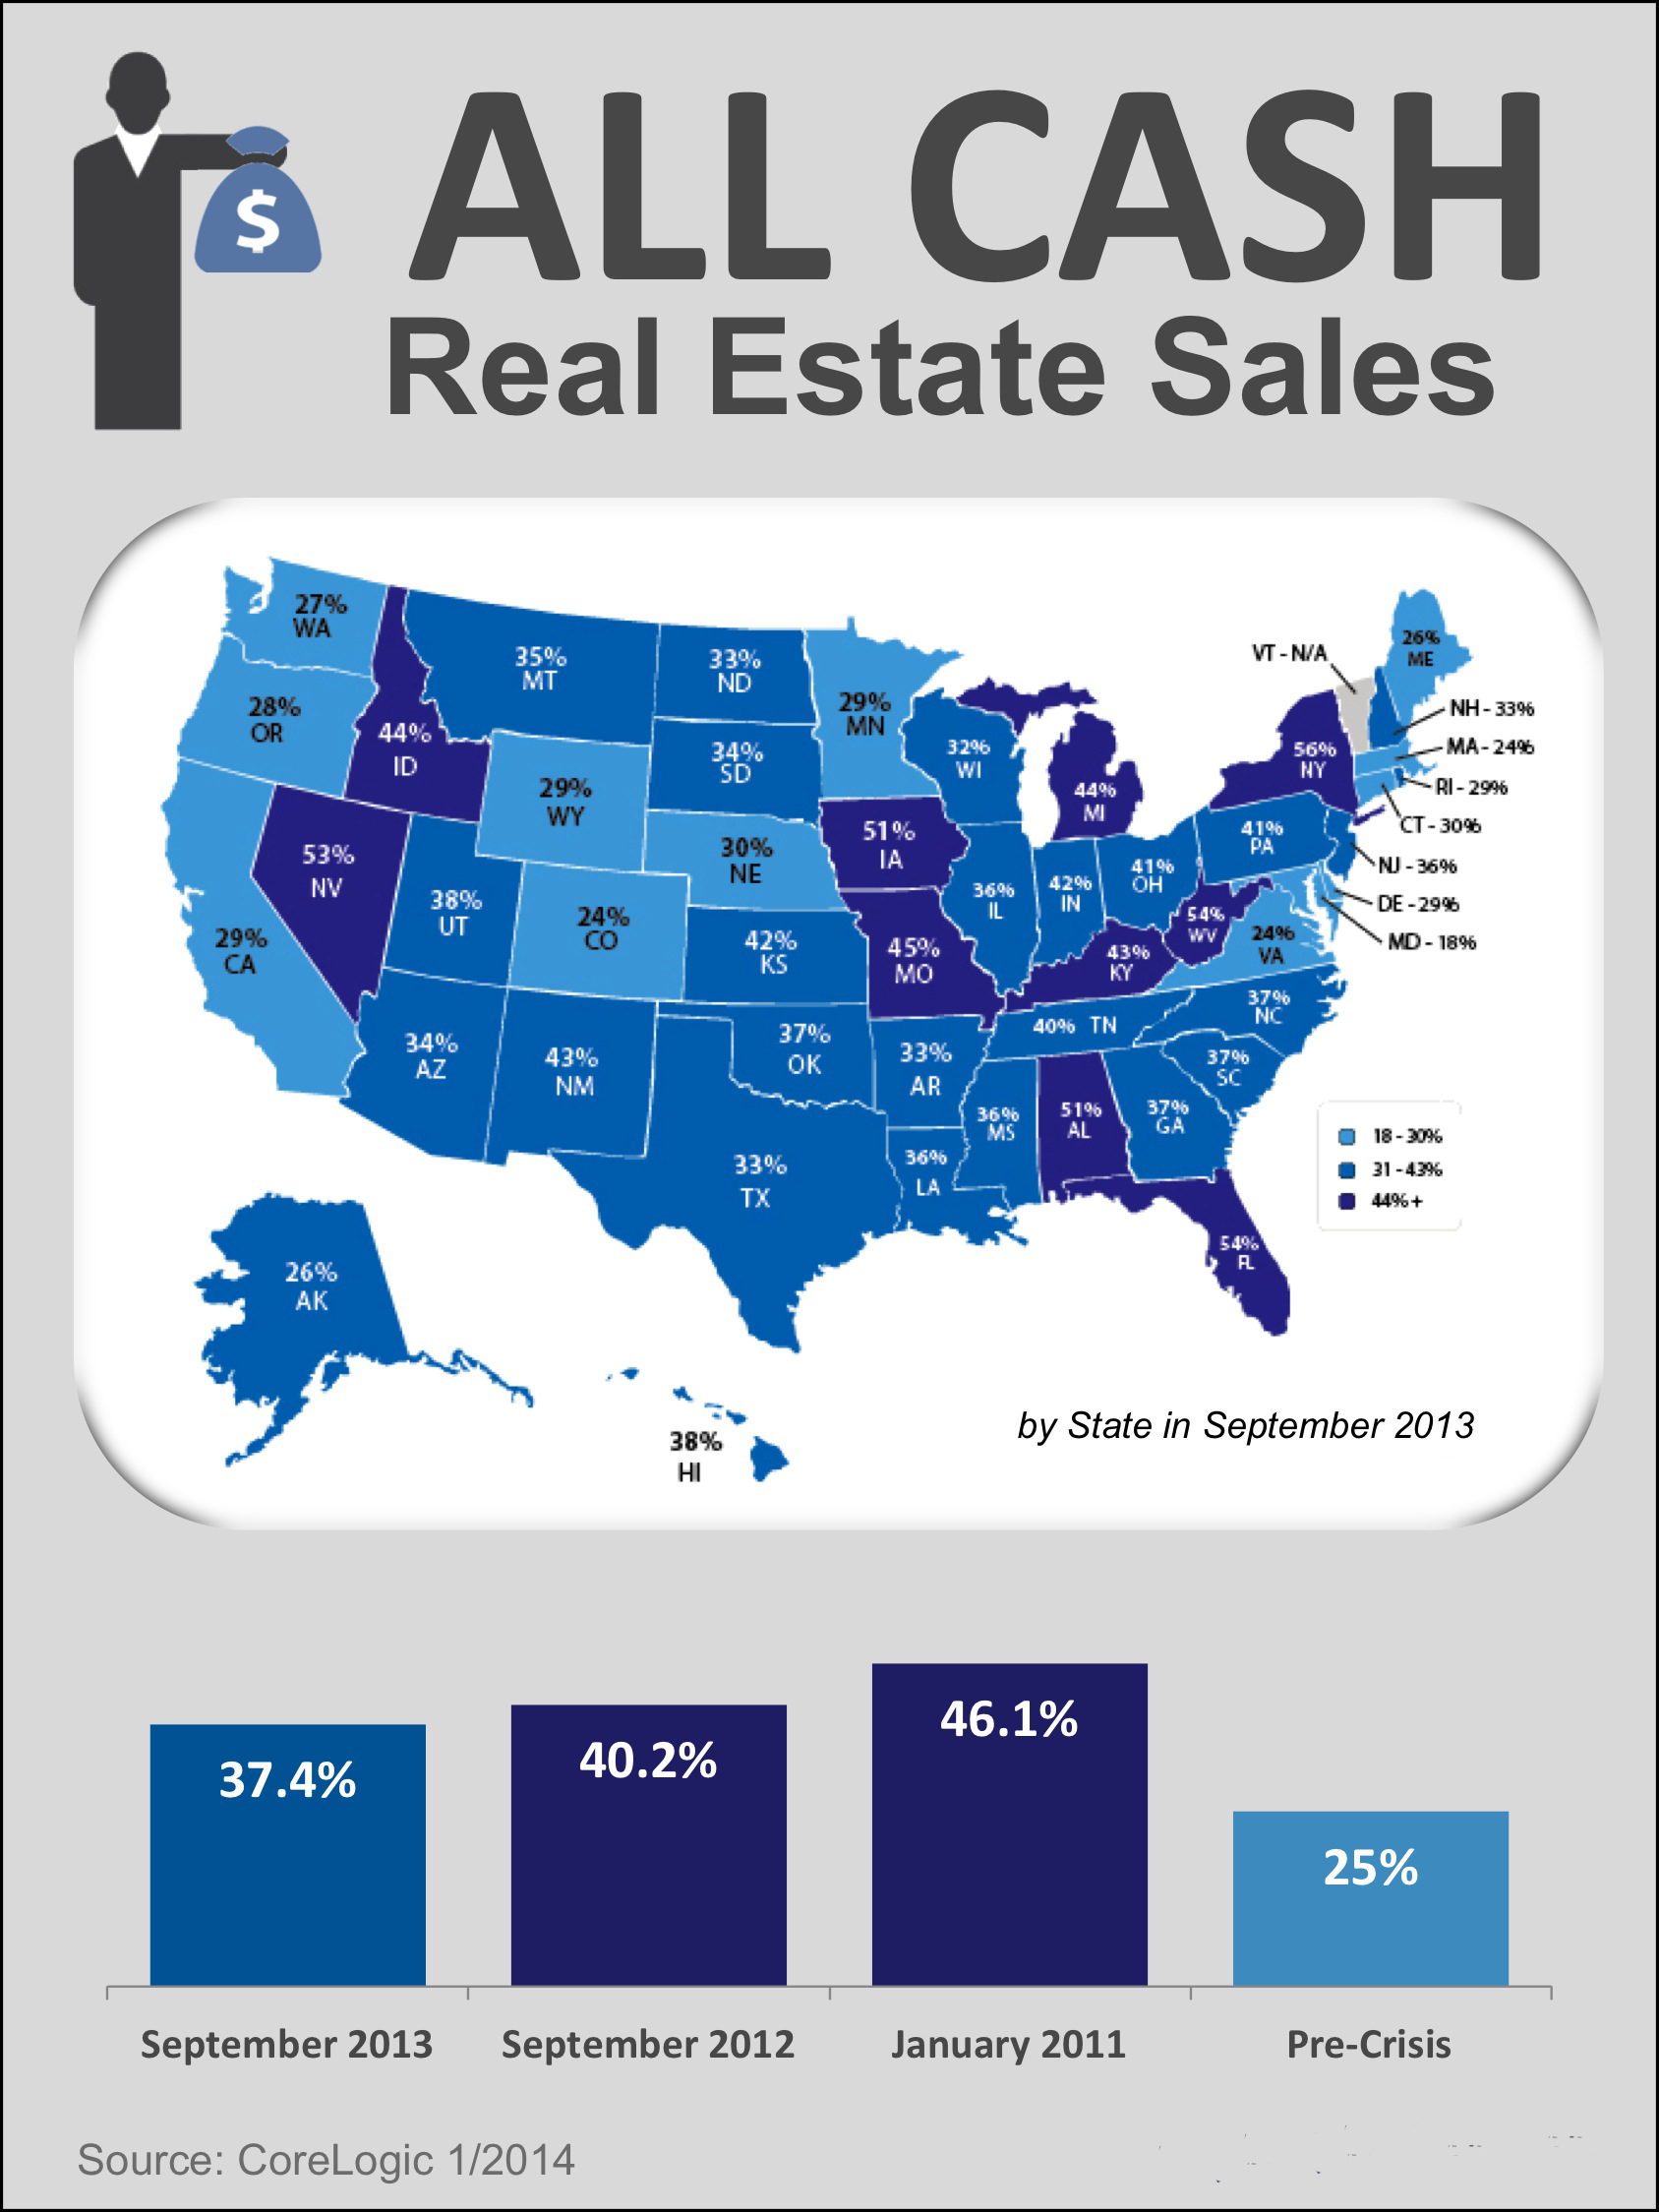 Cash Real Estate Sales — How Common in the Local Market?